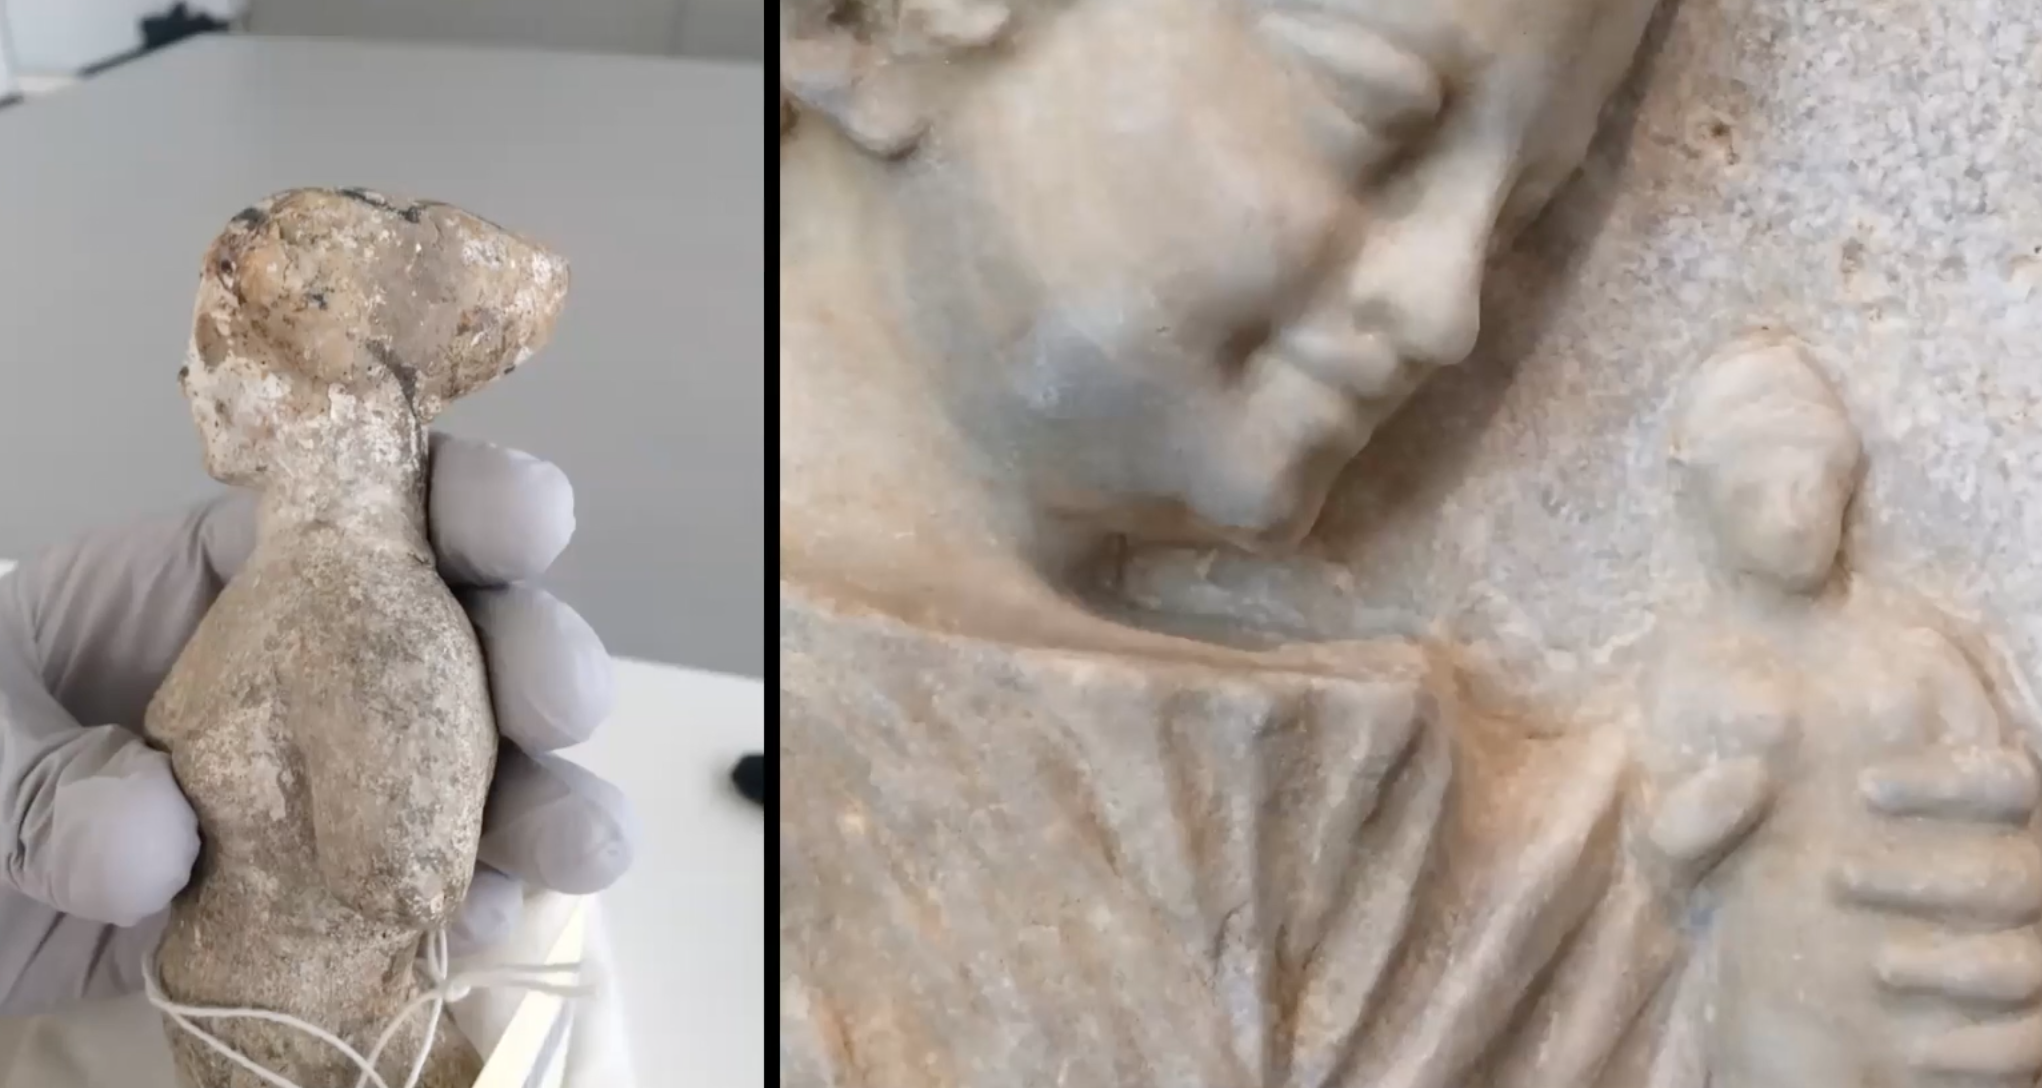 This image shows two side-by-side photographs: the smaller one on the left shows a mottled clay doll figurine in profile, with the head facing left, in the hand of someone wearing a rubber glove. The image on the right is a close-up of a marble sculpture of a little girl's face and shoulder. She is smiling and looking at the head of a tiny doll figurine just to the right of her. The figures both emerge from a marble surface.